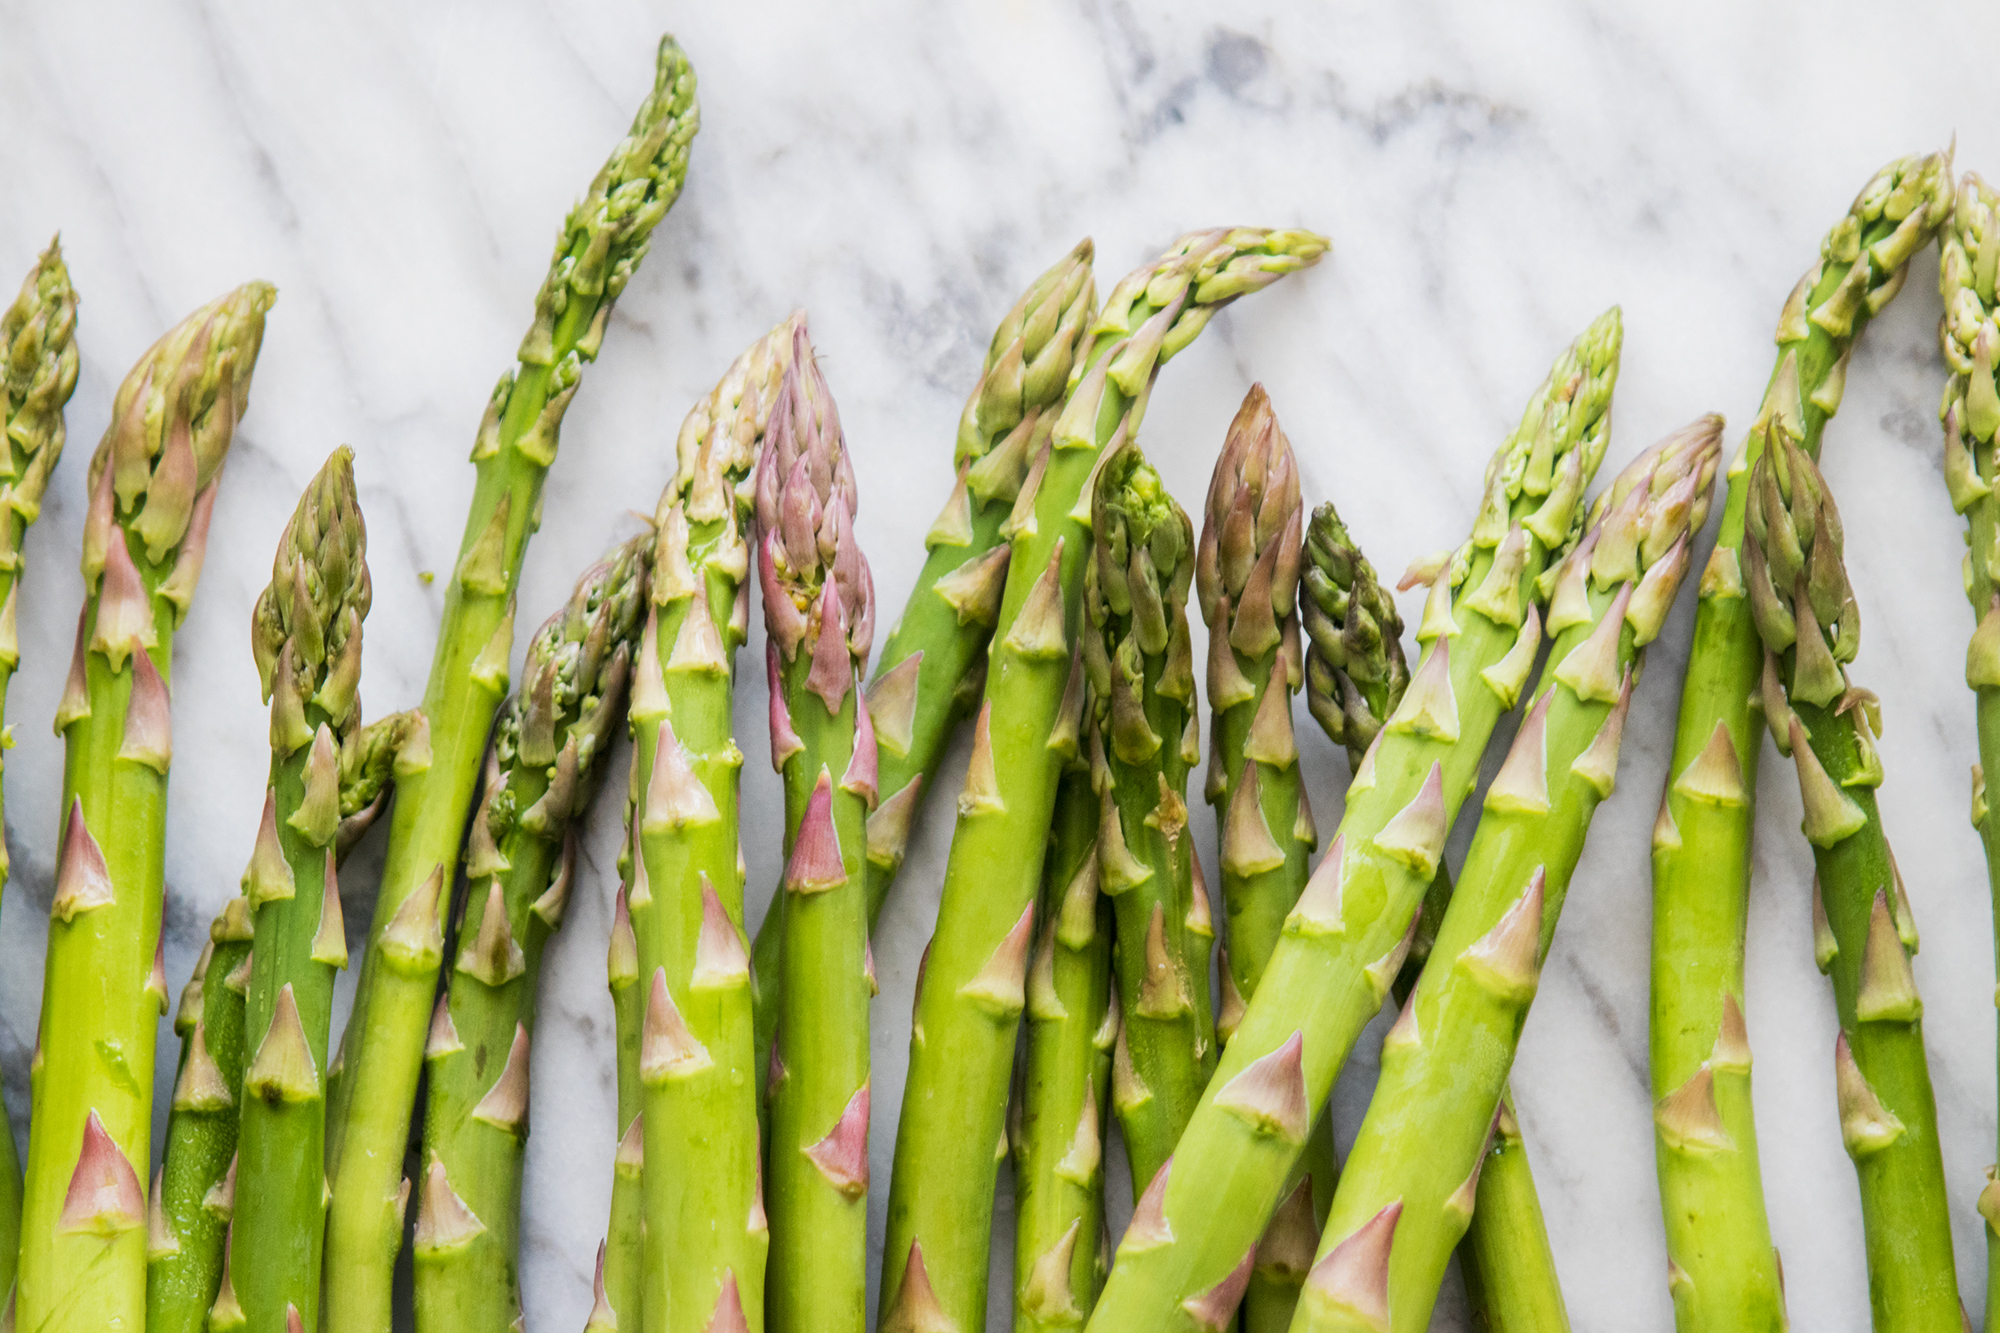 Asparagus: How to Buy, Prep & Cook This Versatile Vegetable